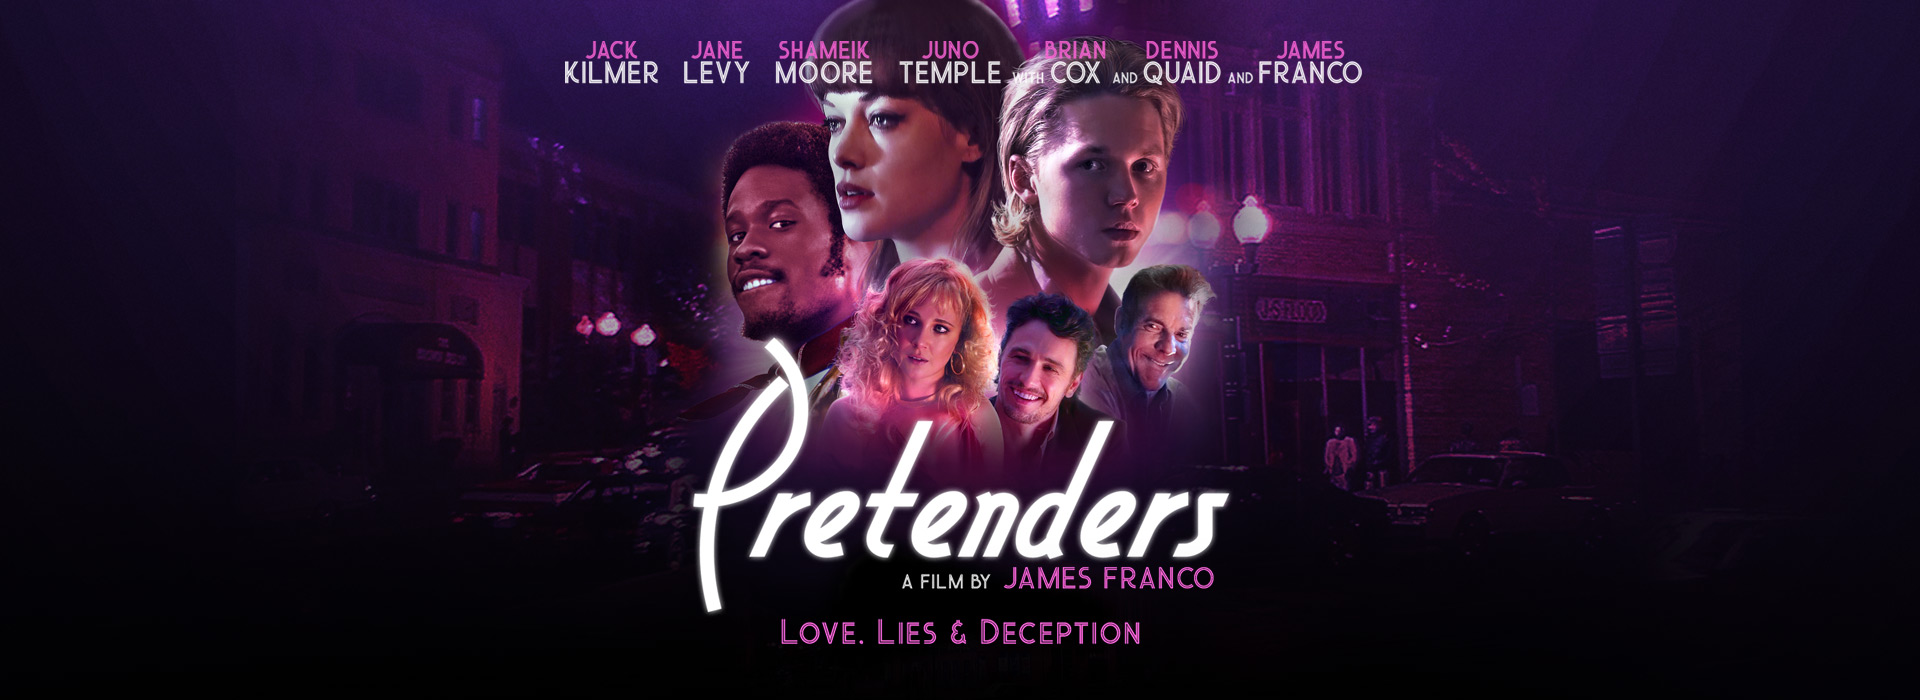 Pretenders - Love. Lies & Deception